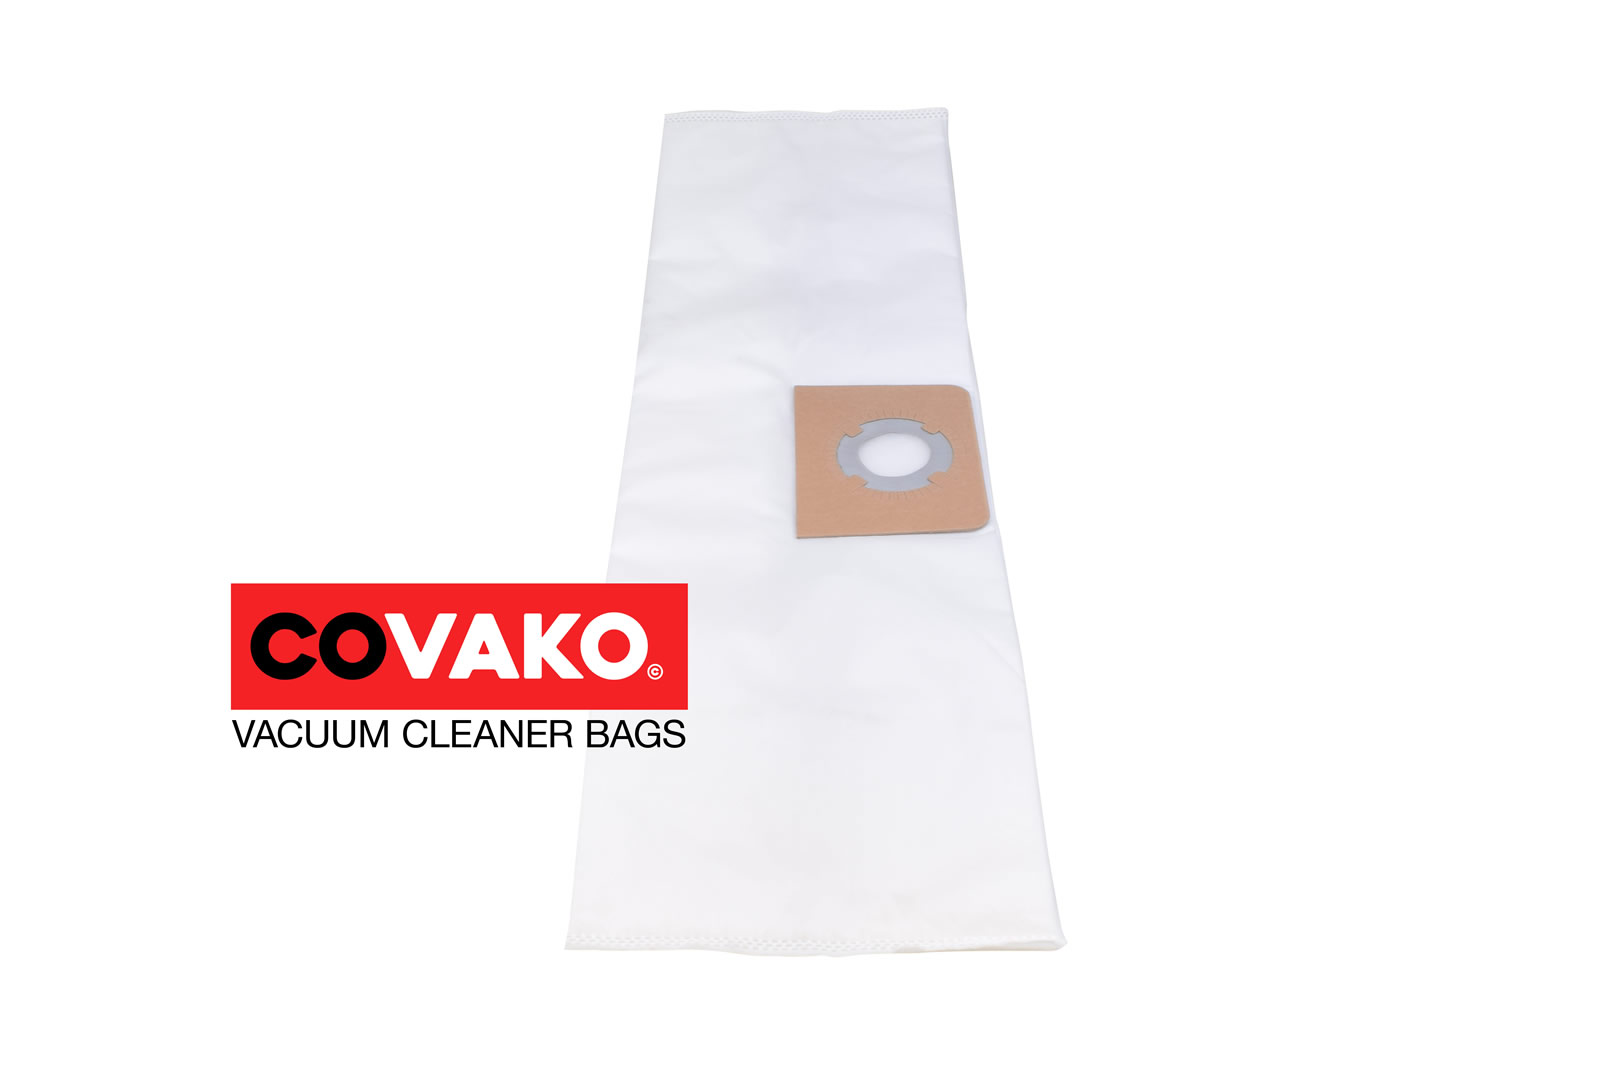 Lavor GB 22 / Synthesis - Lavor vacuum cleaner bags